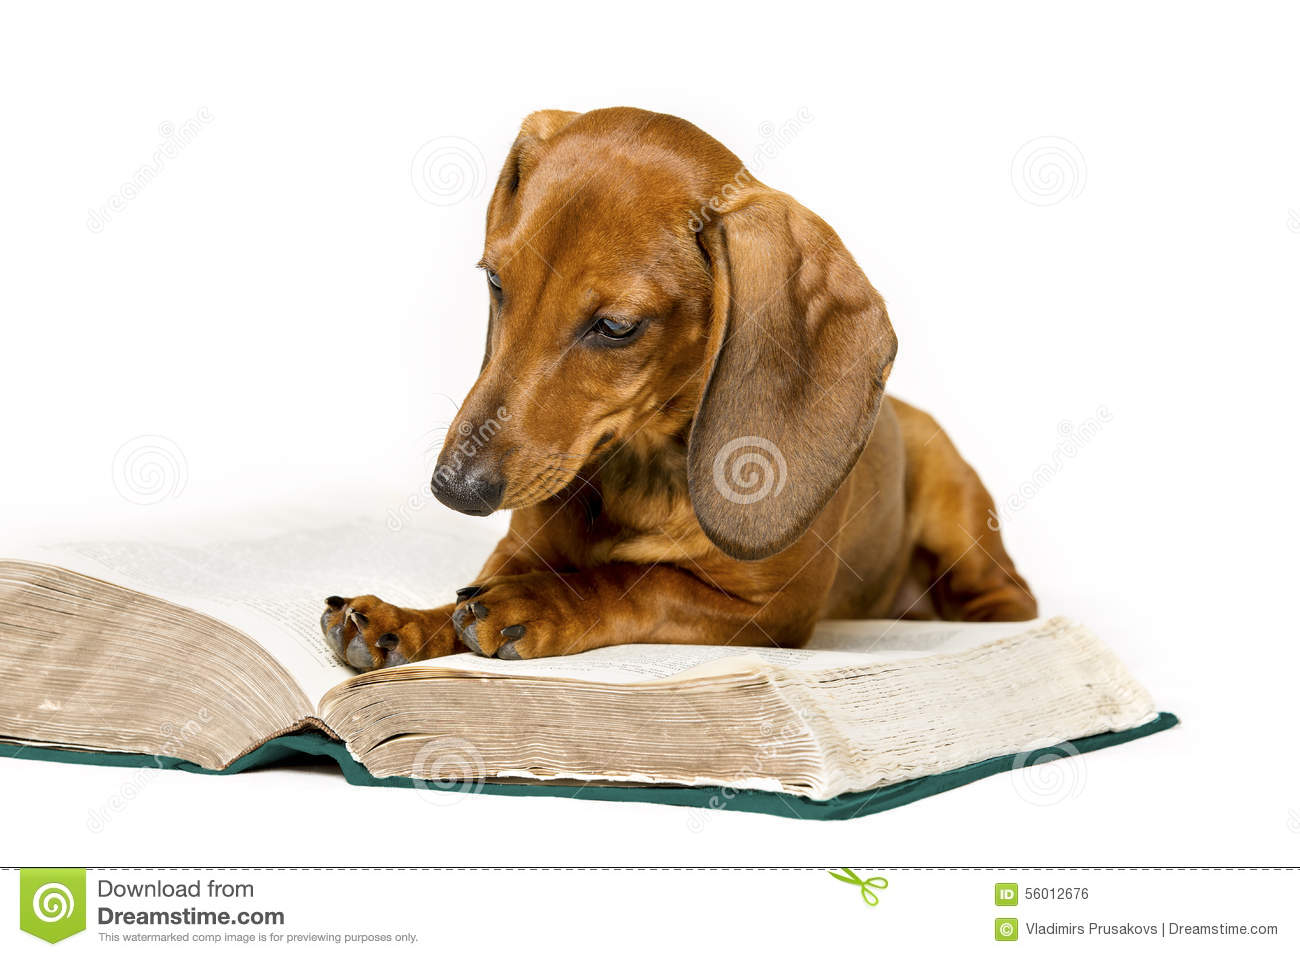 Tree coloring pages only coloring pages - Dog Read Book Animal School Education Reading On White Stock Photo